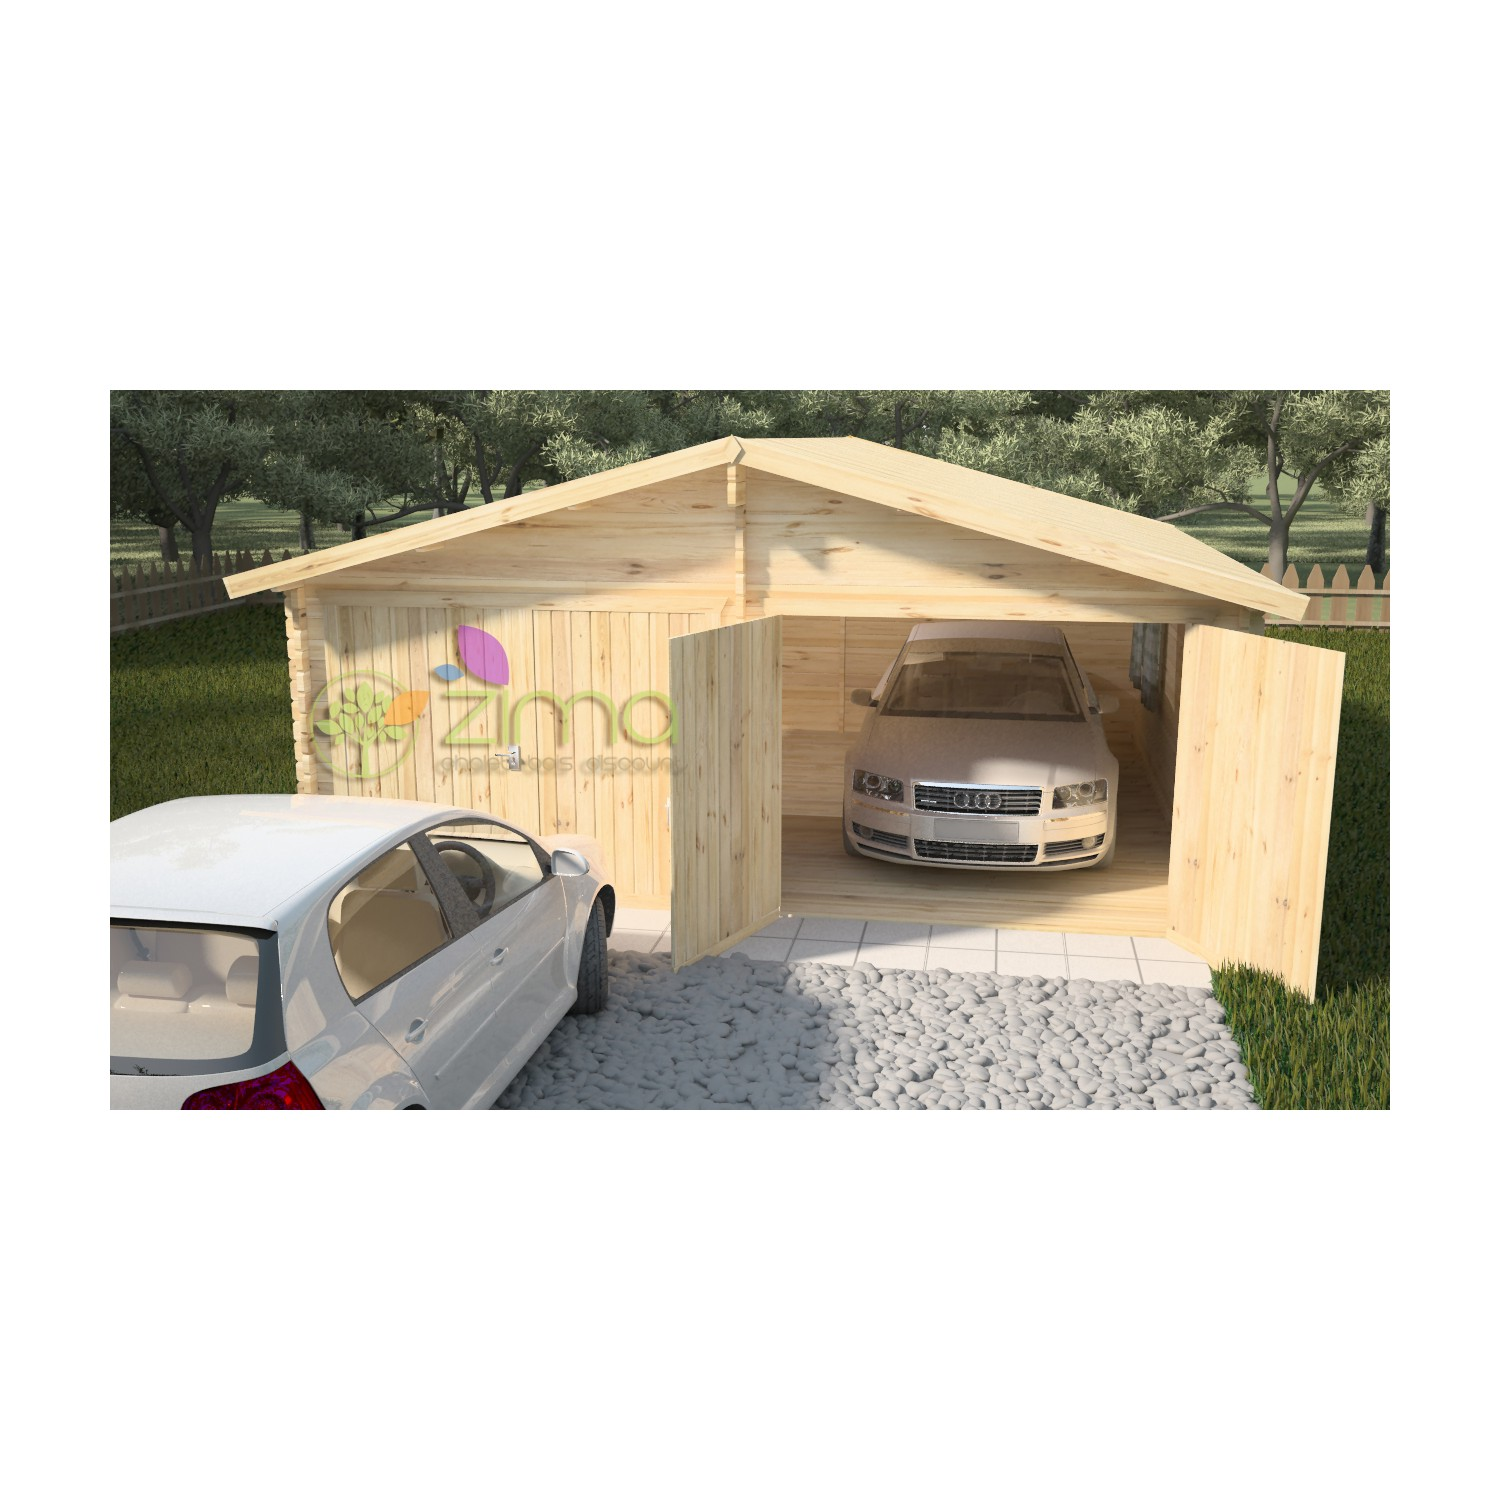 Double garage bois - Garage bois en kit leroy merlin ...